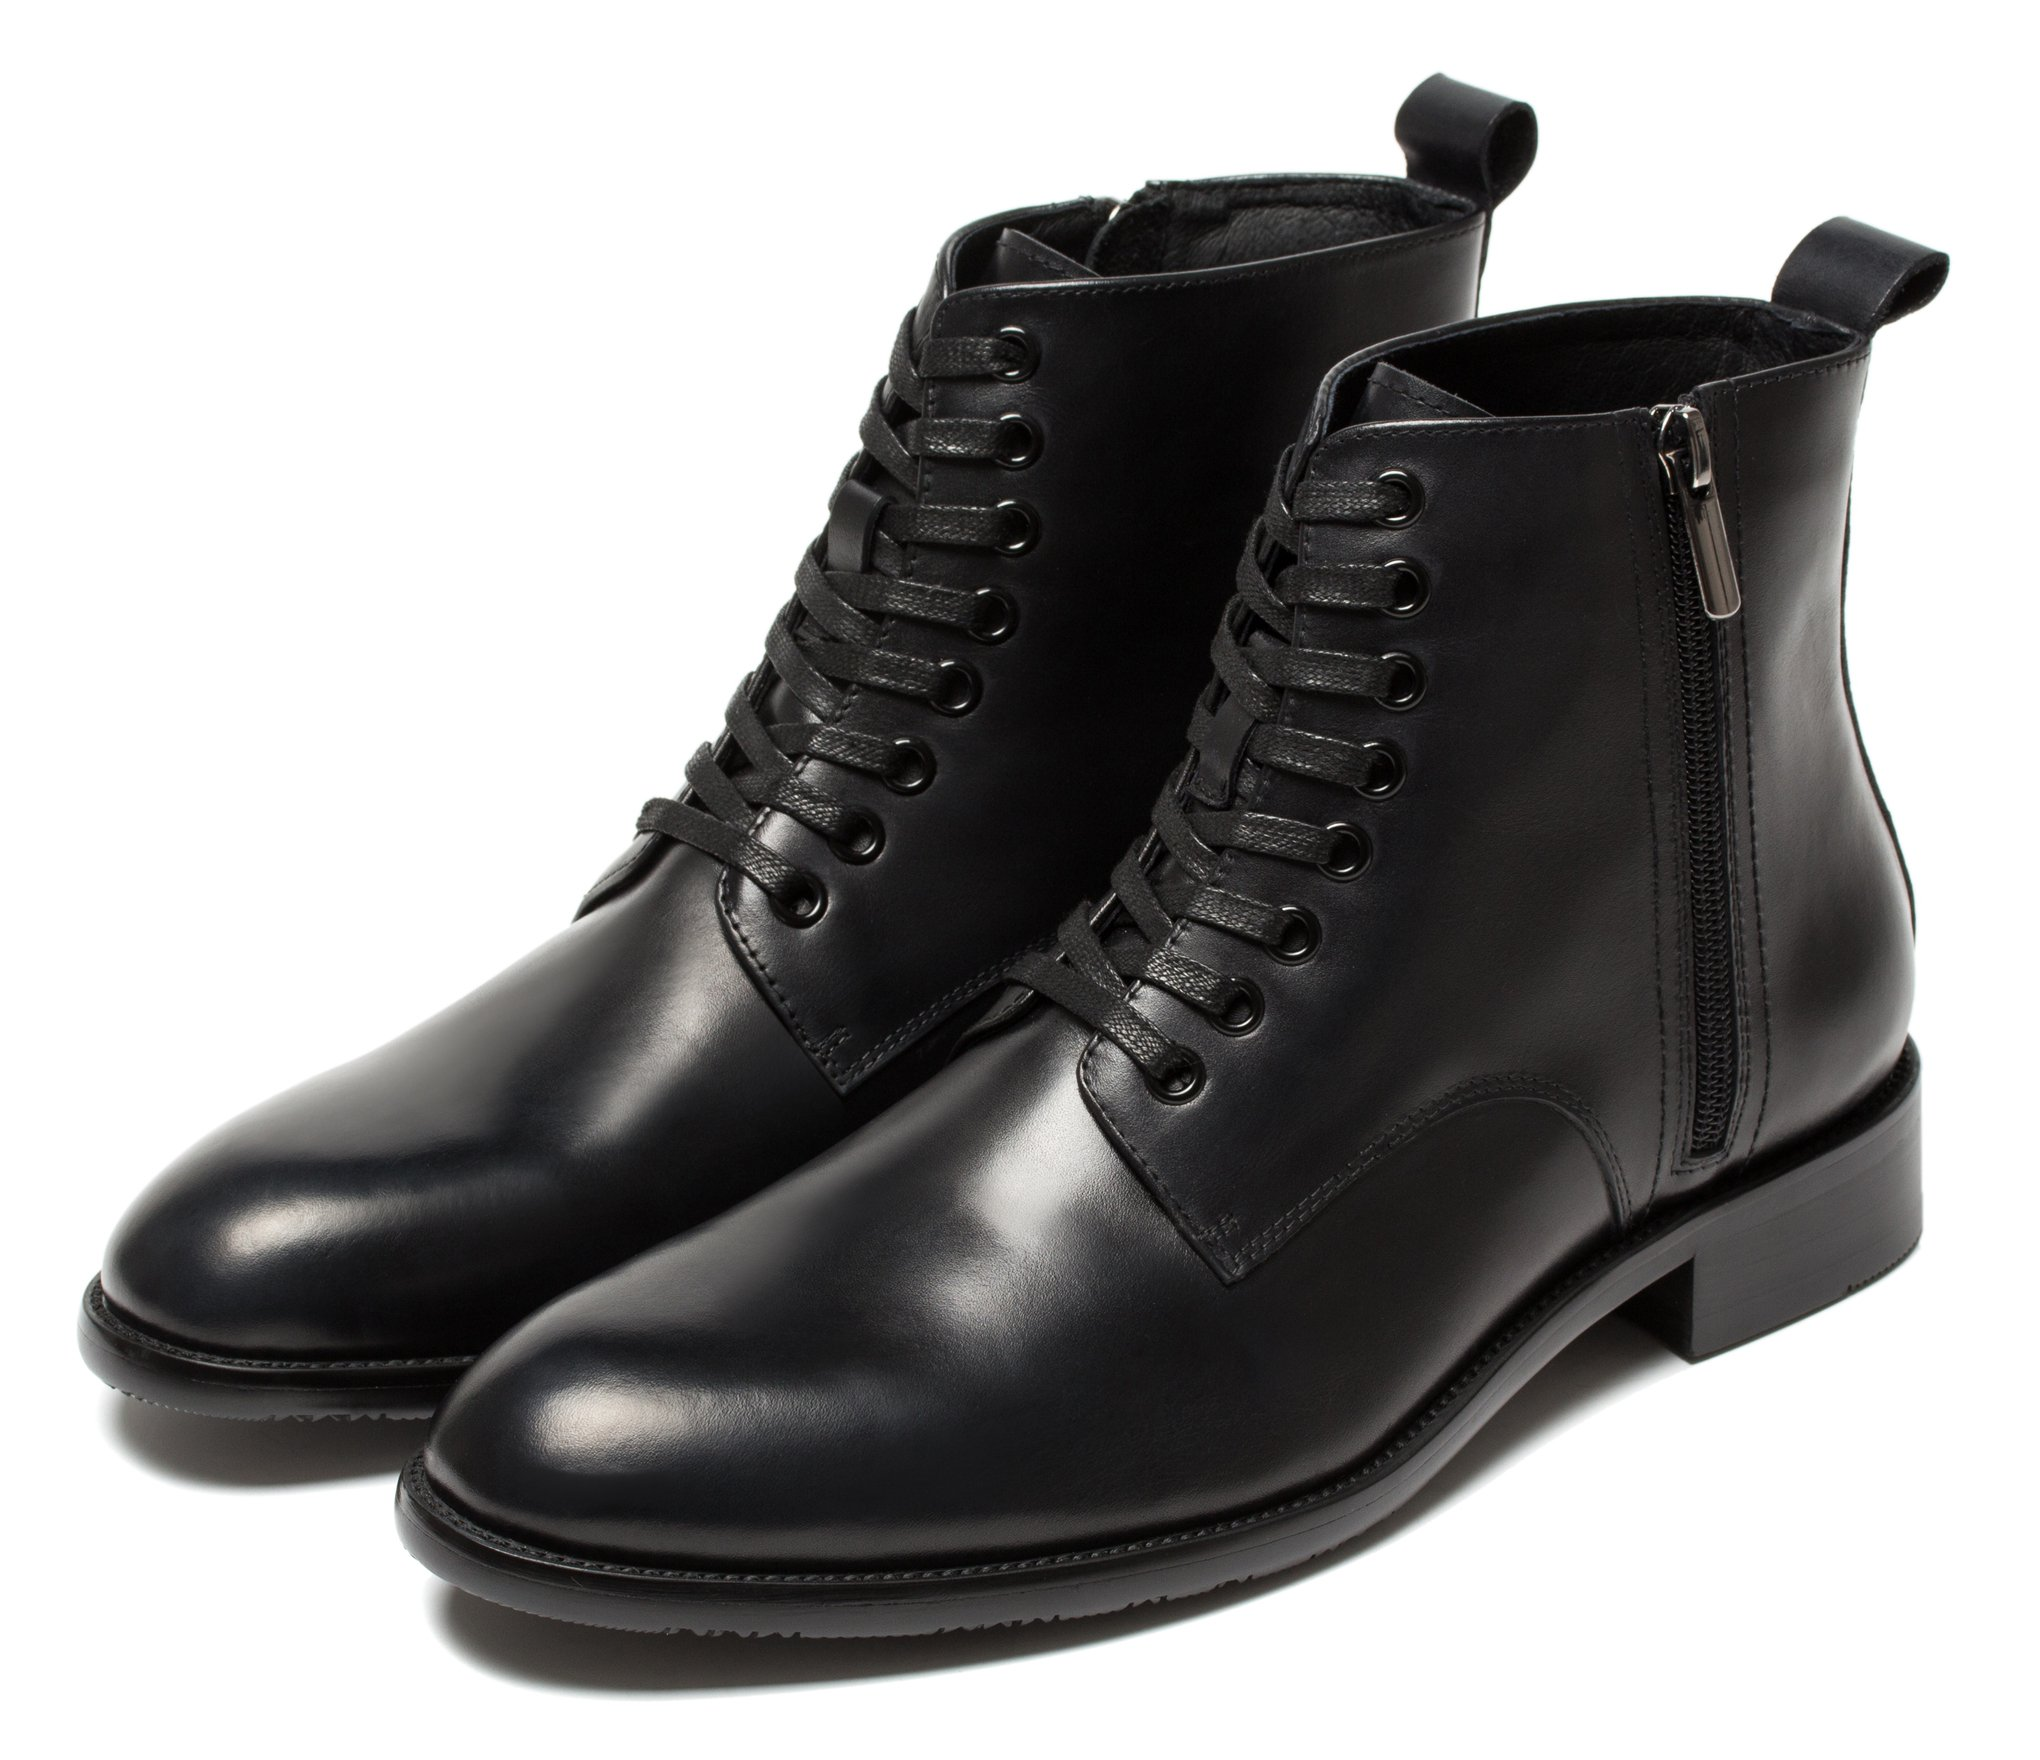 OPP Designer Side-zip Ankle Boots Men Fashion Lace-Up High Top Bootie Shoes Winter 2016 5.5 Black